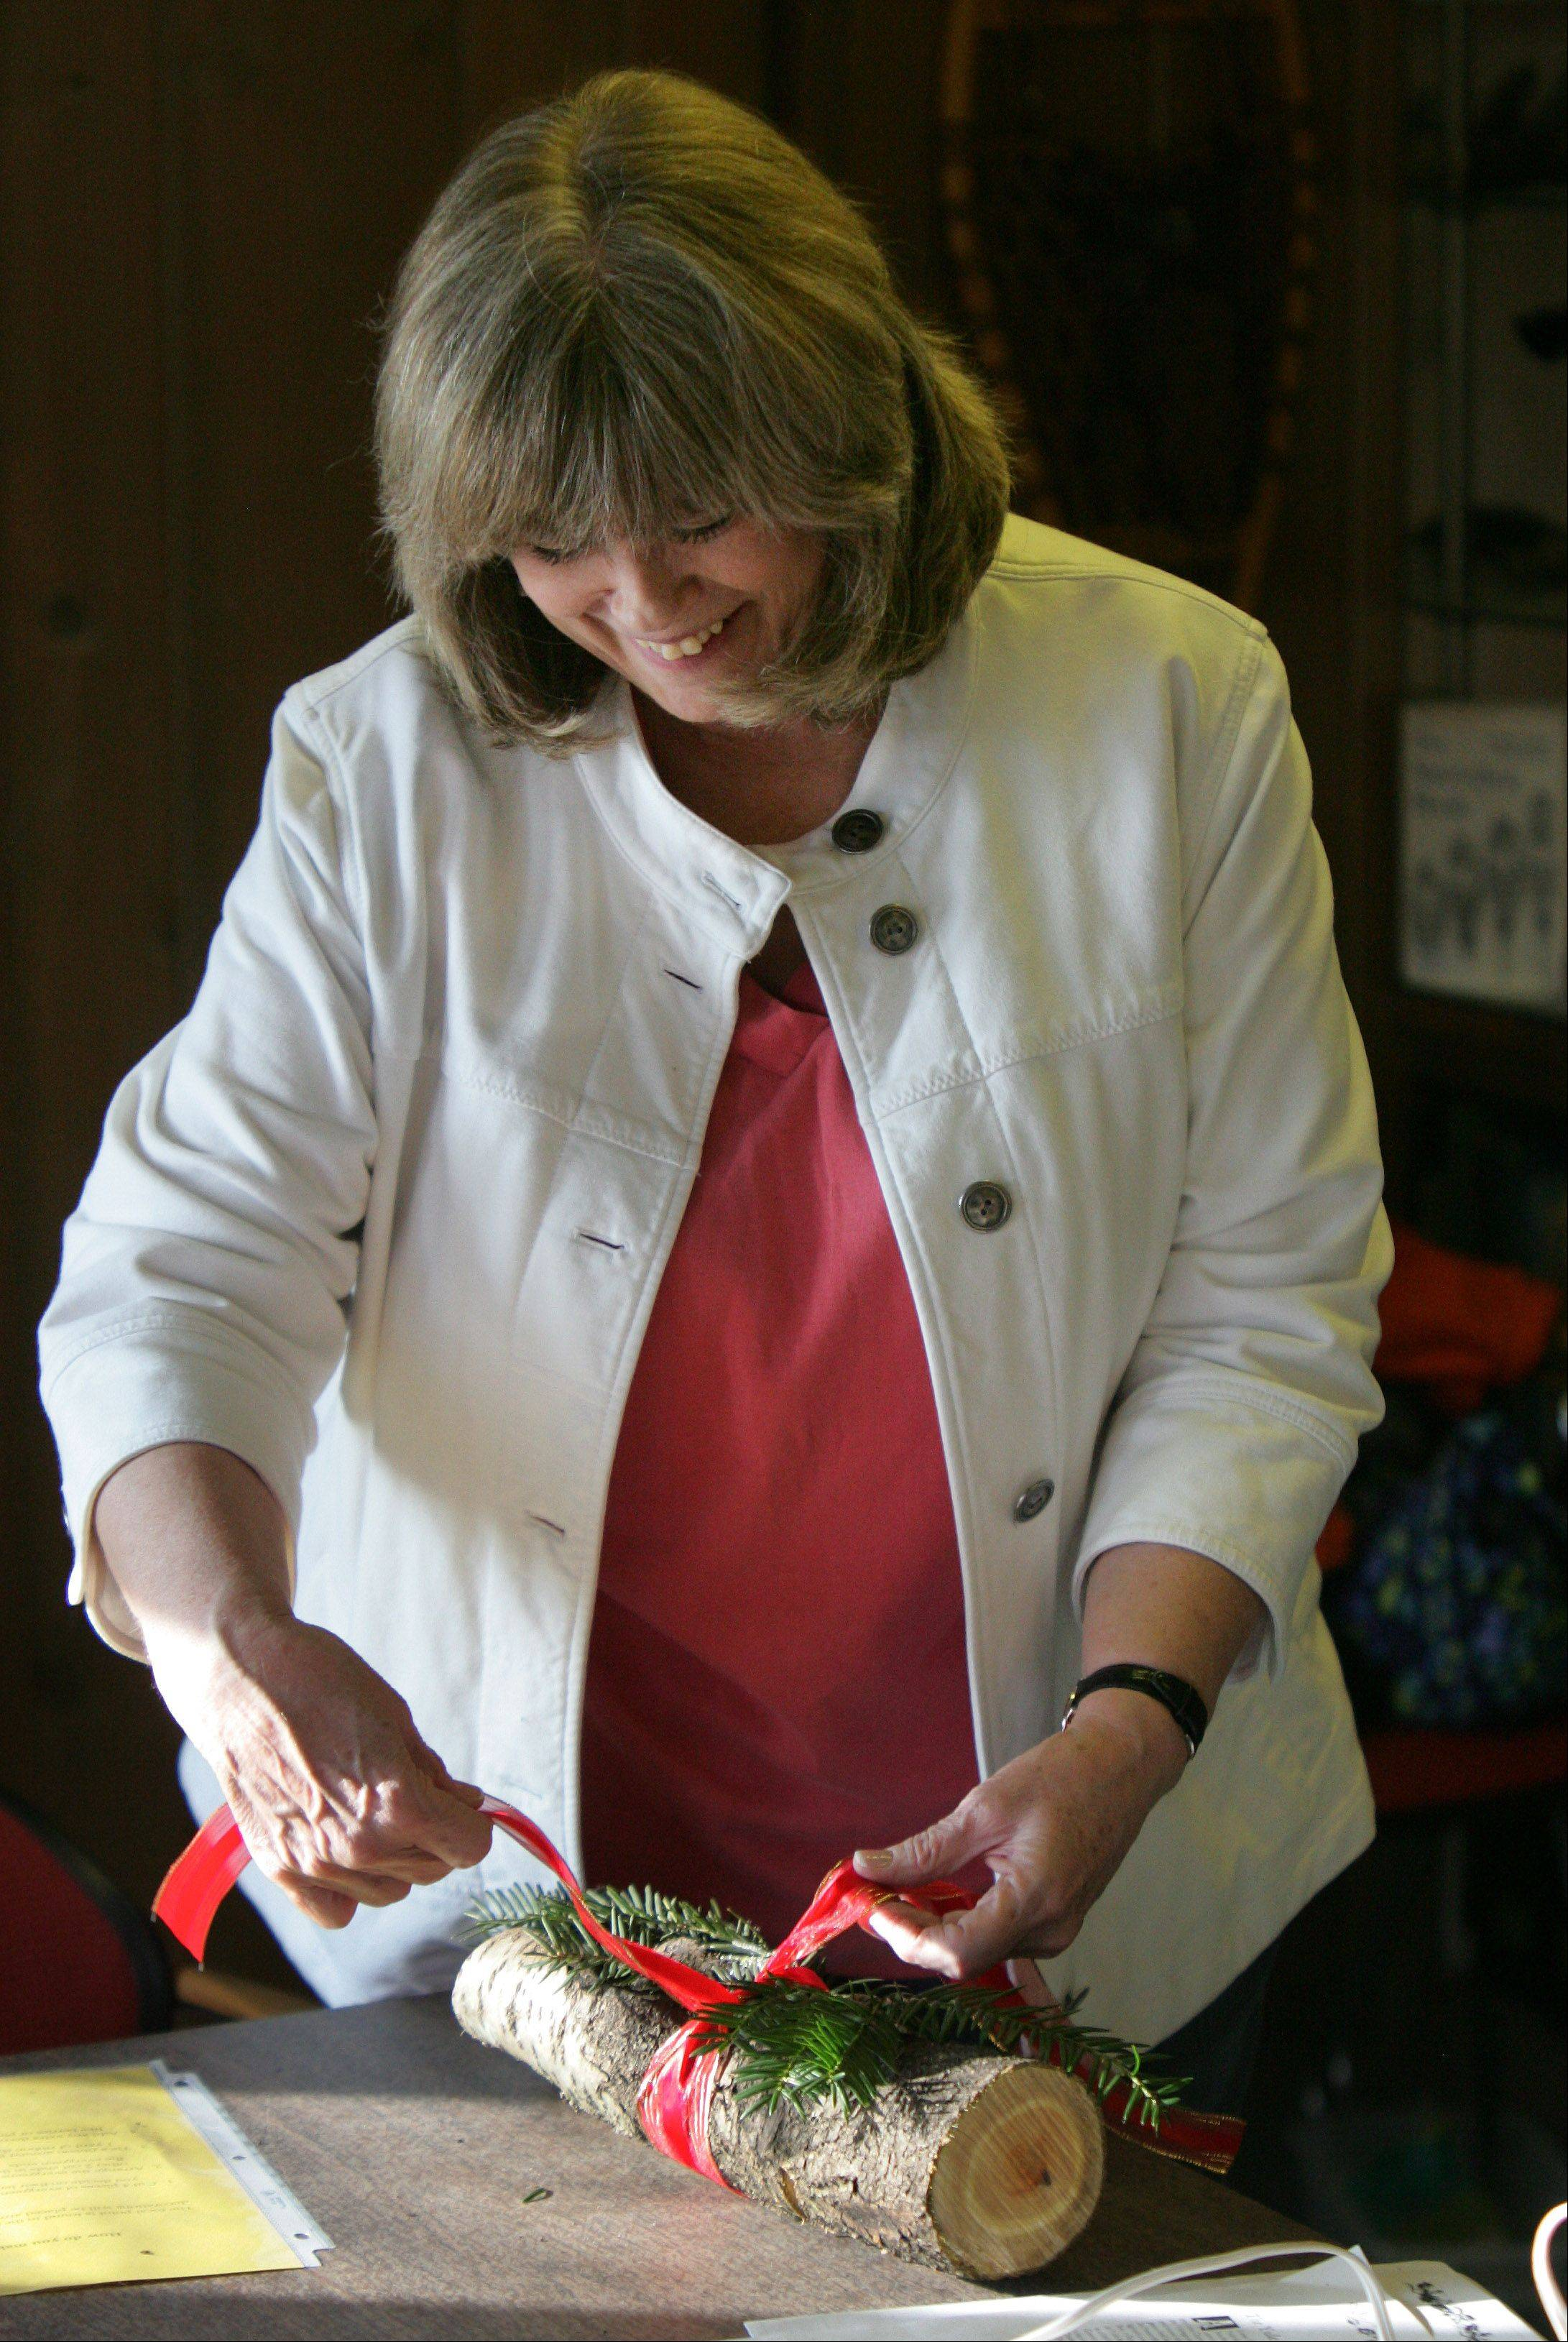 Volunteer Joanne Strong of Hoffman Estates demonstrates how to make a decorative Yule log during the Yule Log Open House Sunday at the Stillman Nature Center in South Barrington. Visitors learn to make festive Yule logs out of natural materials.